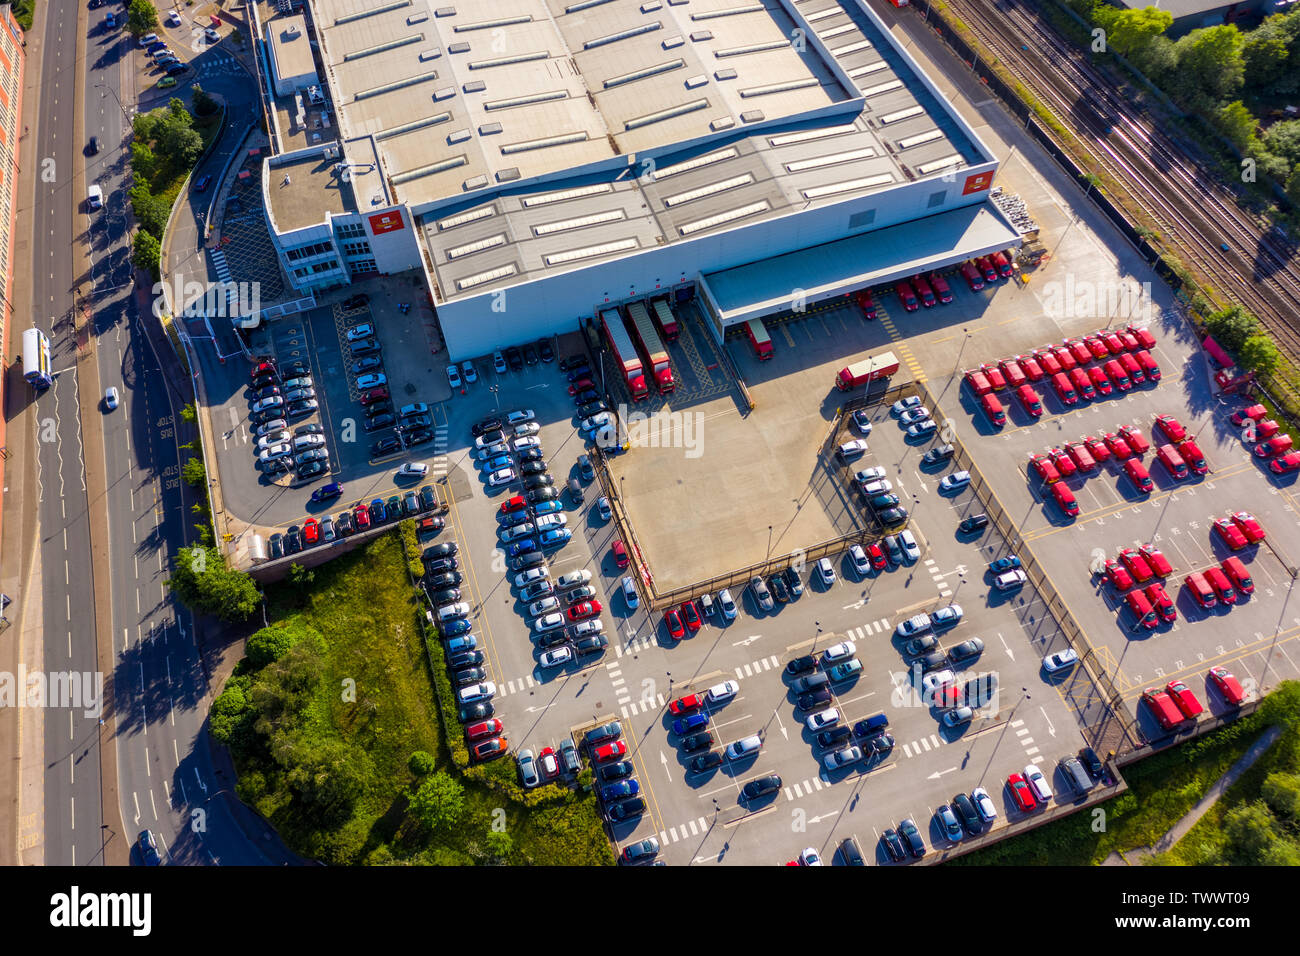 SHEFFIELD, UK - 20TH JUNE 2019: Aerial shot of the Royal Mail postal delivery depot in Sheffield City, South YOrkshire, UK - Stock Image